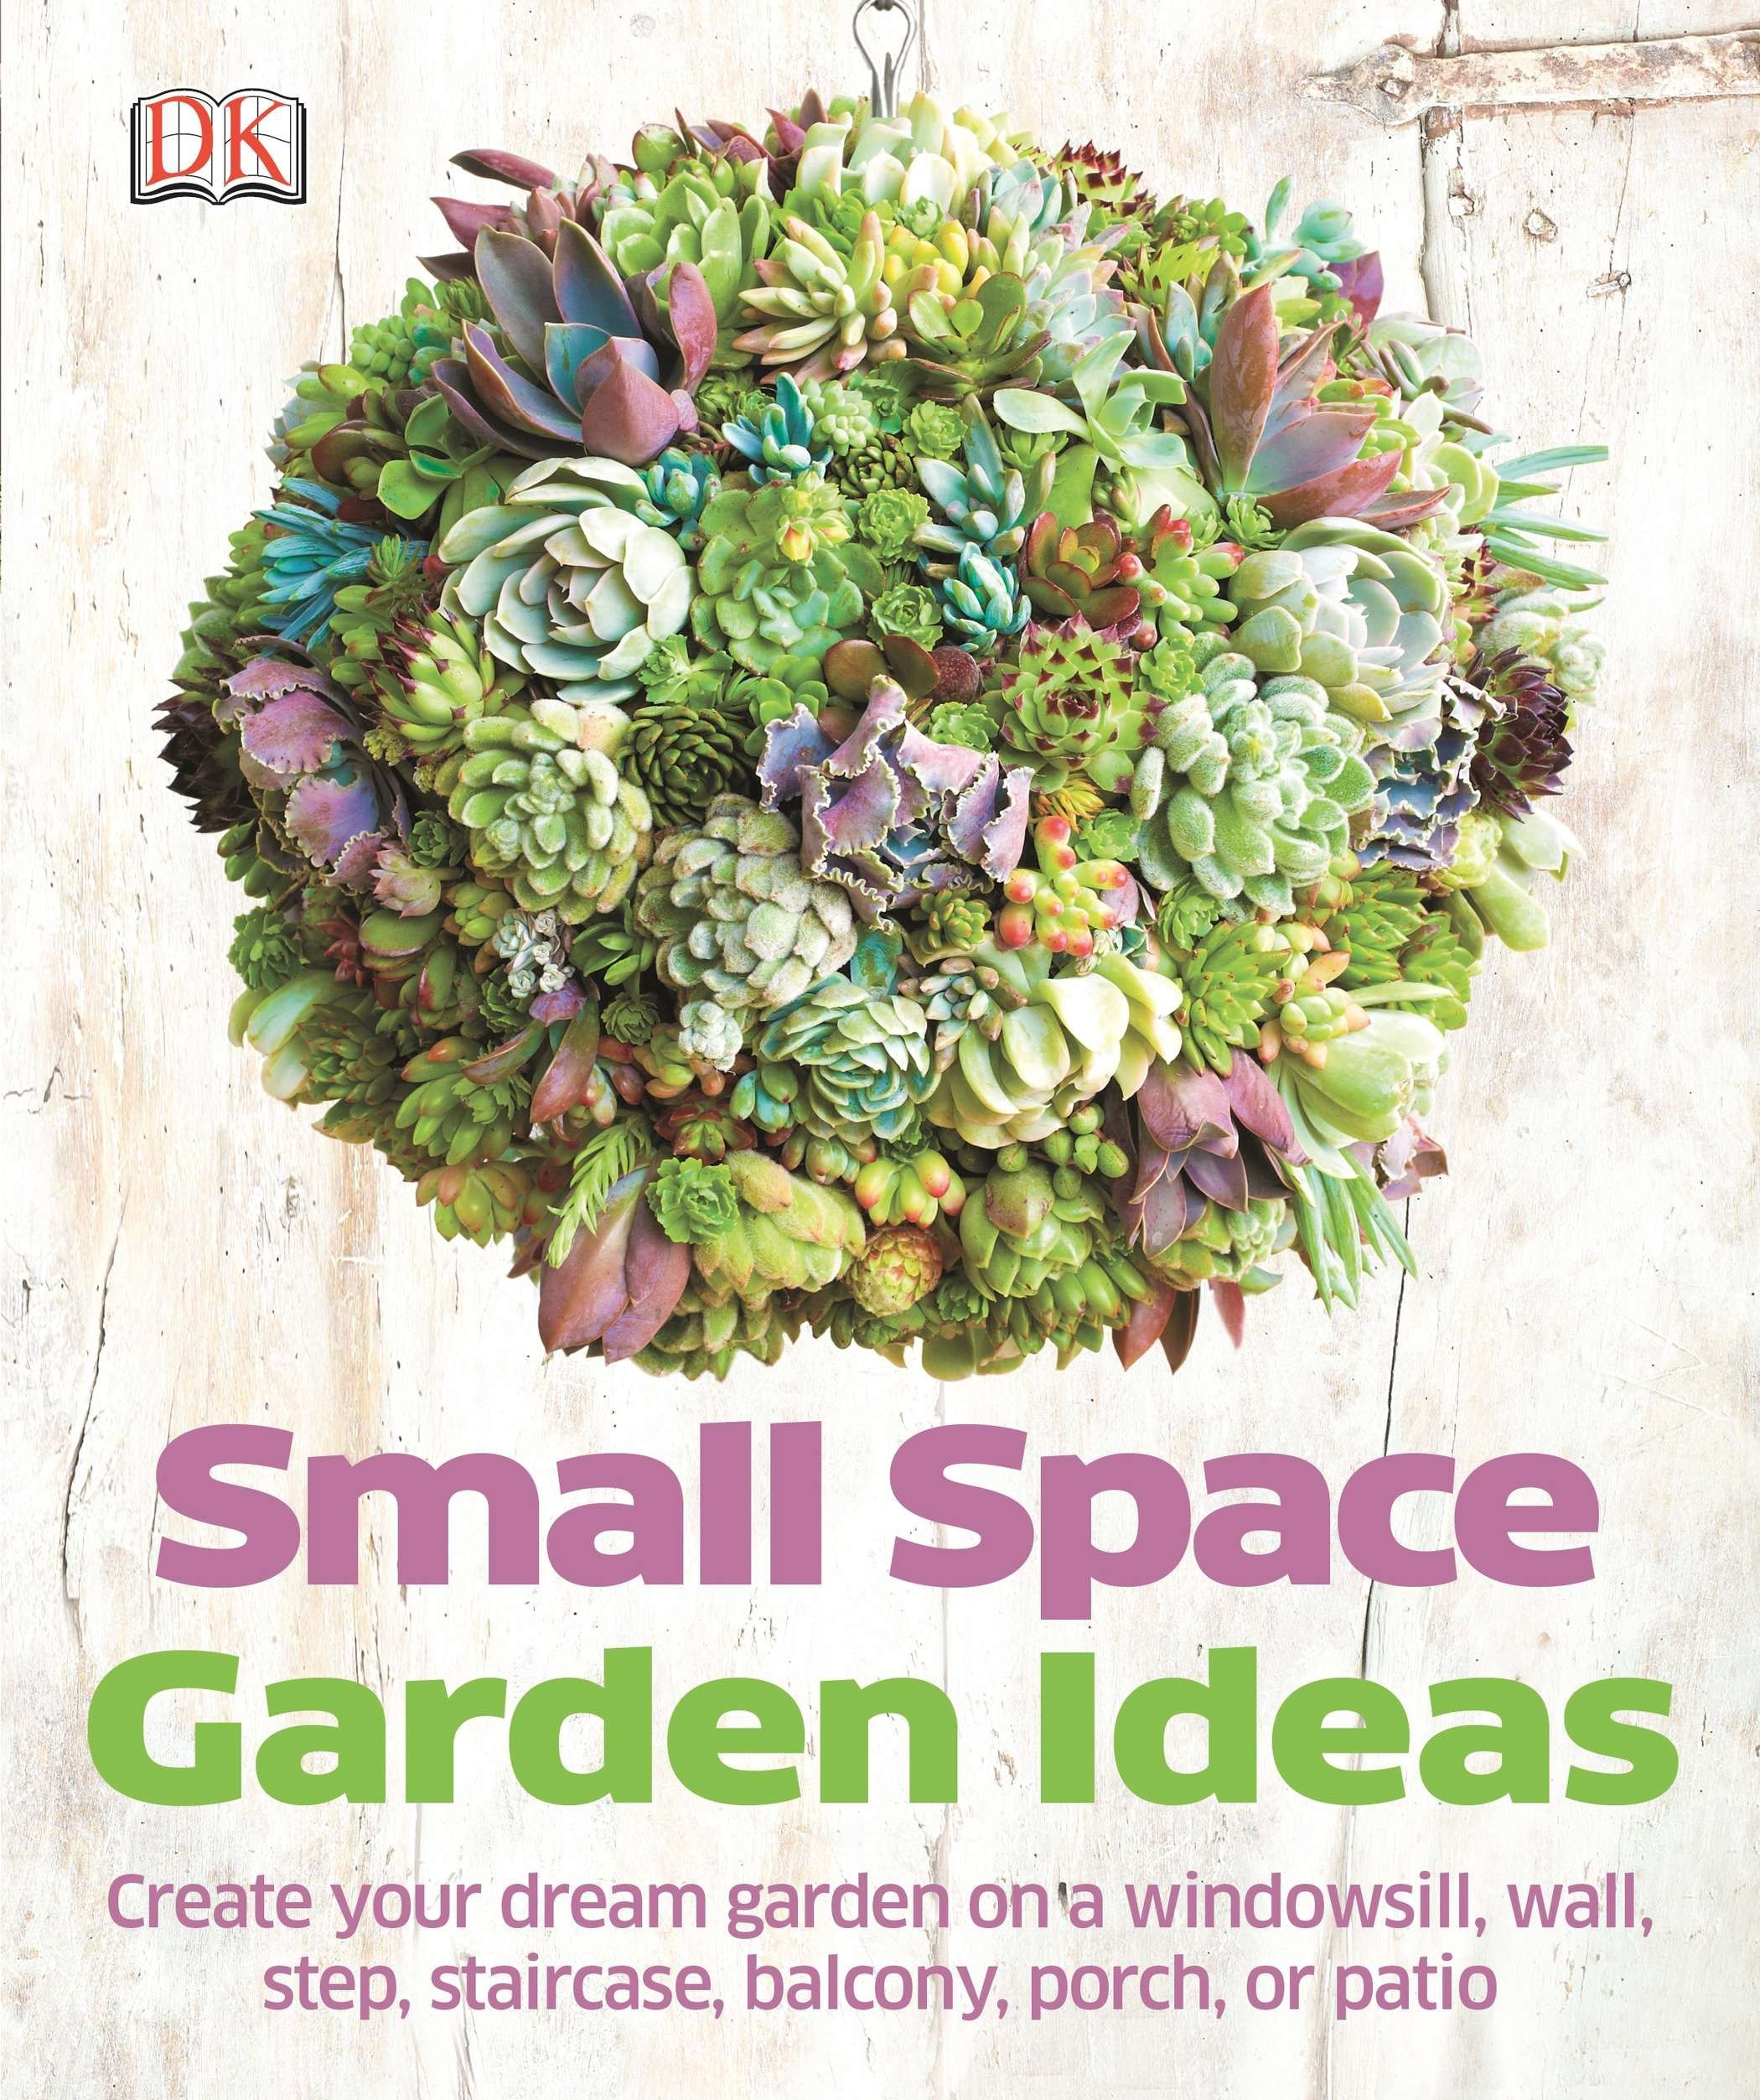 Small Space Garden Ideas: Philippa Pearson: 9781465415868: Amazon.com: Books